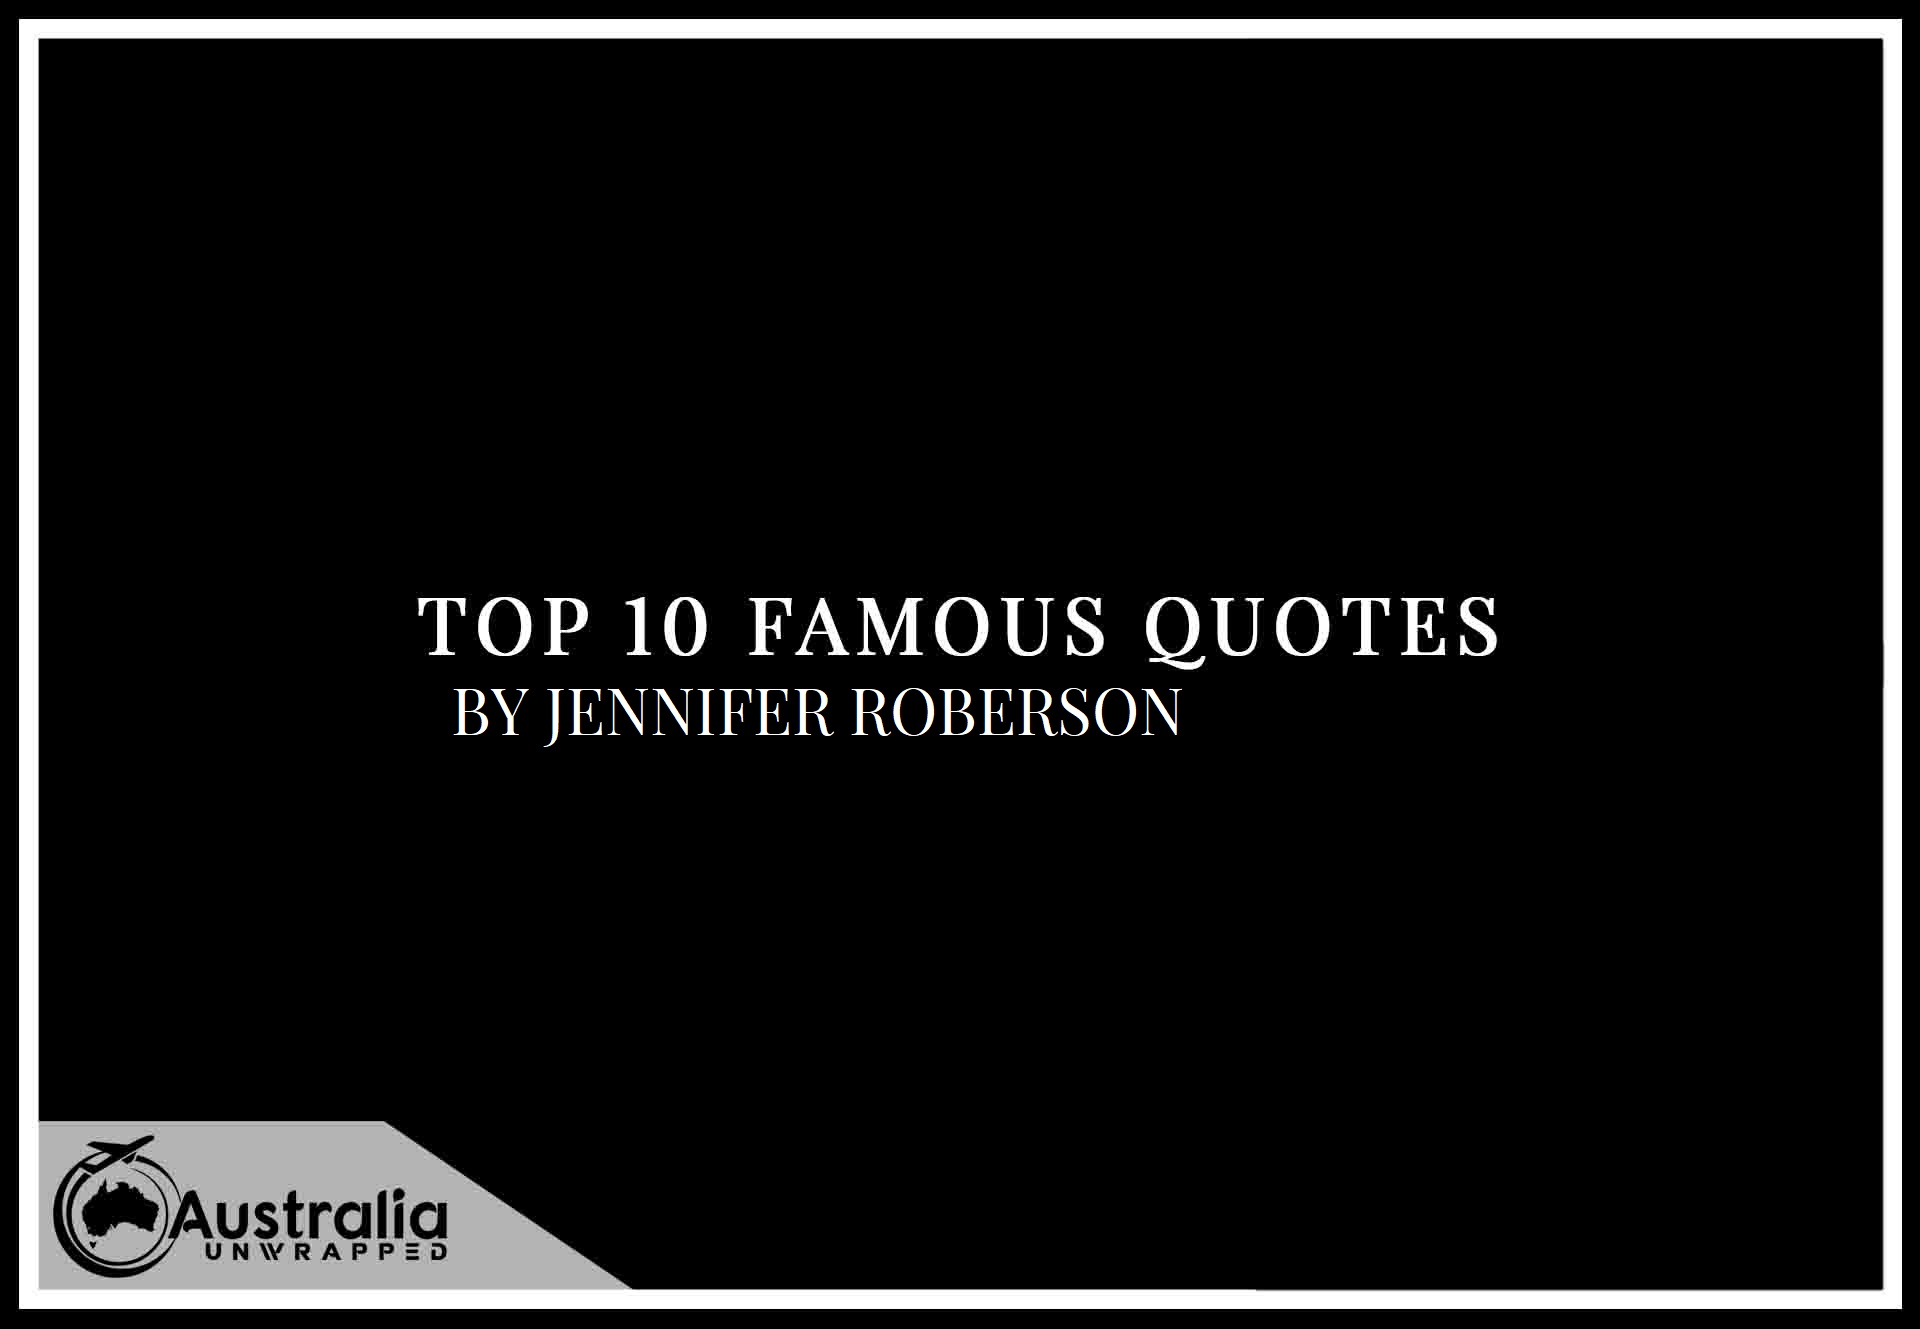 Top 10 Famous Quotes by Author Jennifer Roberson